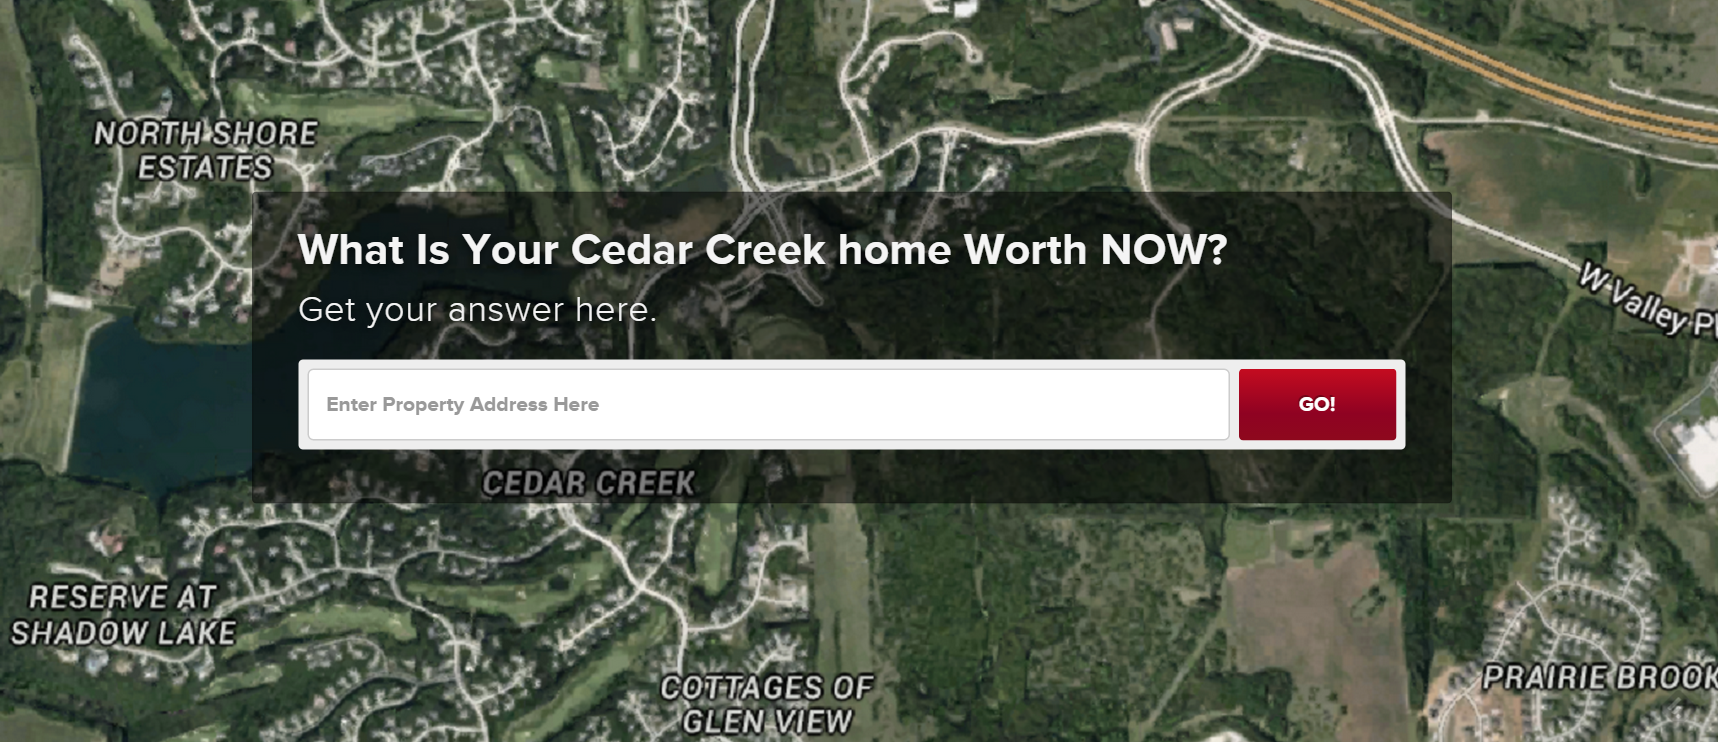 Cedar Creek Olathe, cedar creek homes, cedar creek homes for sale